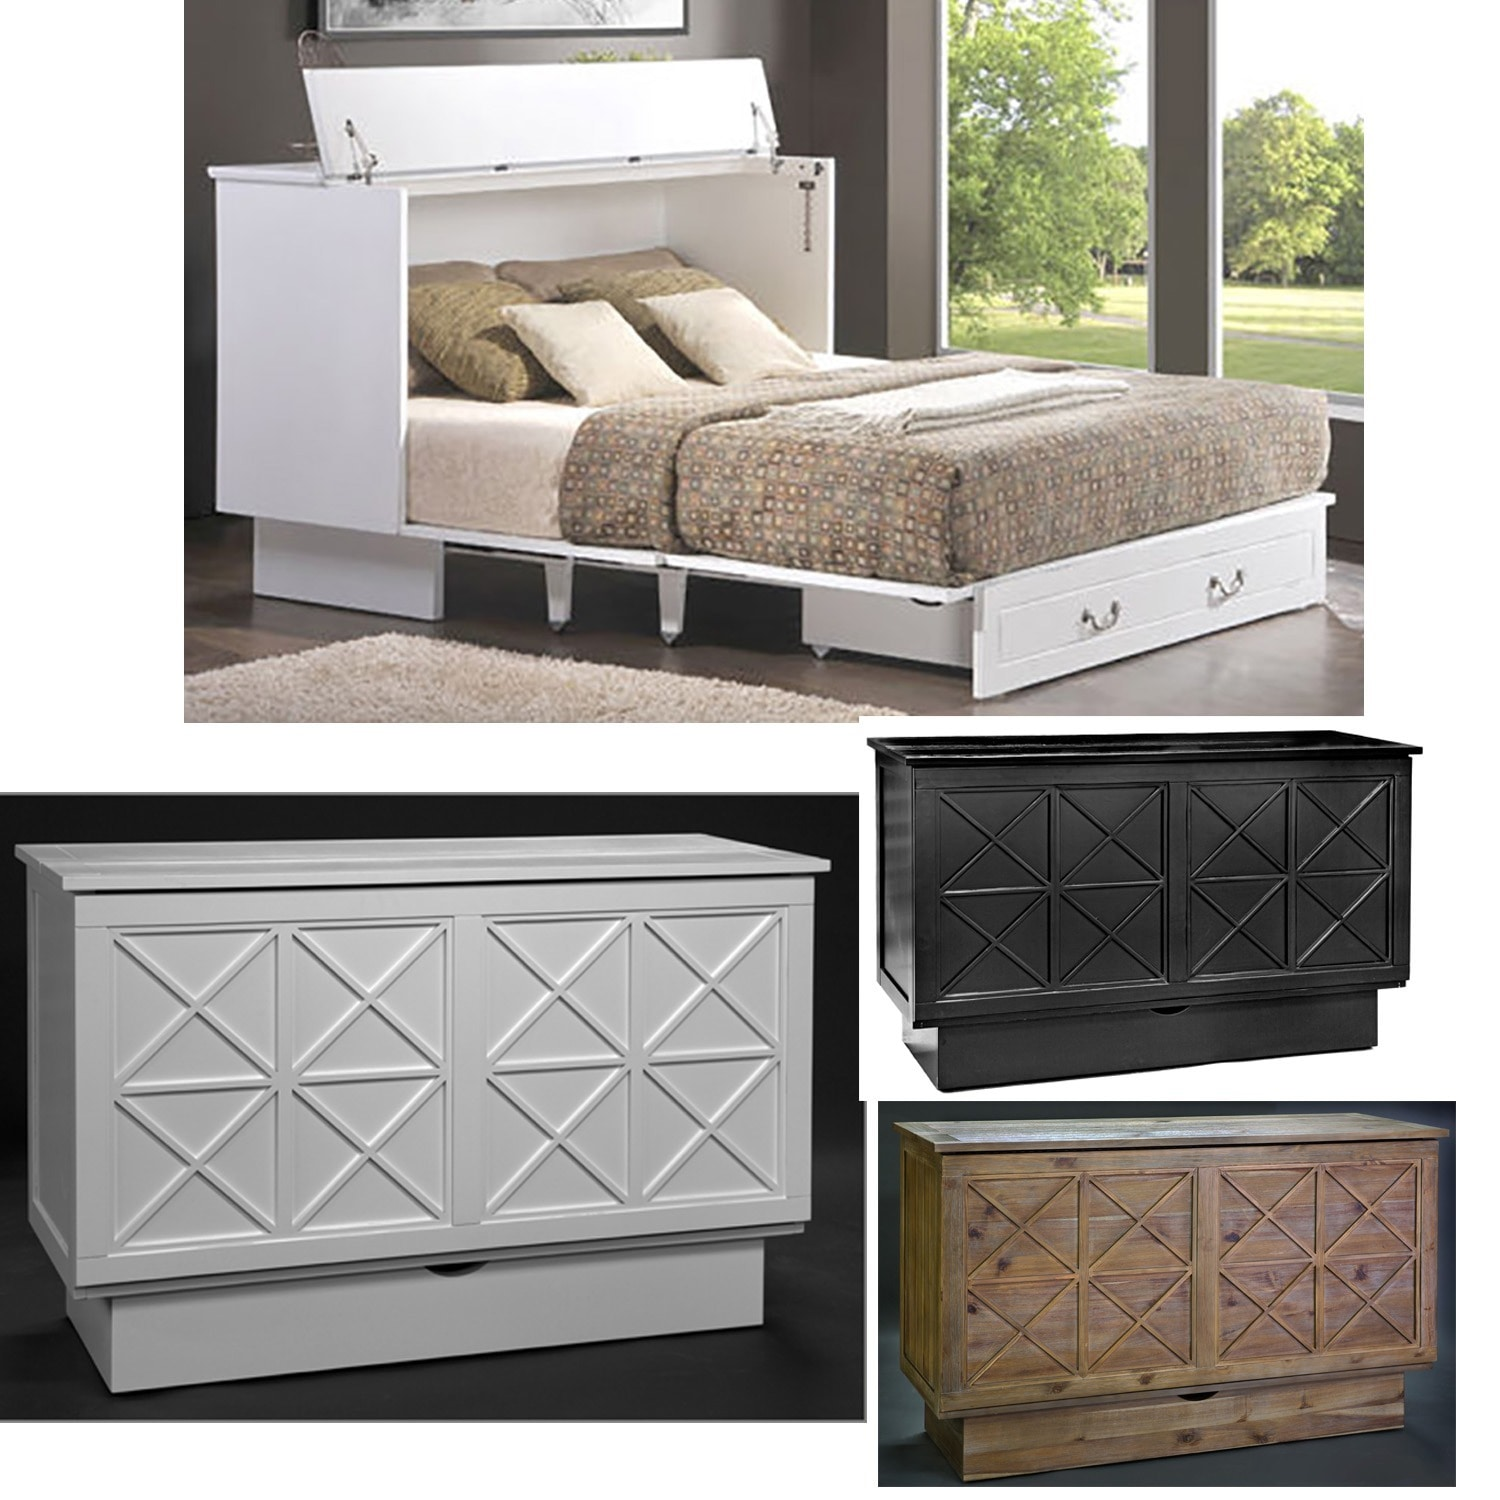 Essie Cabinet Bed With Queen Mattress   Free Shipping Today   Overstock.com    20486446